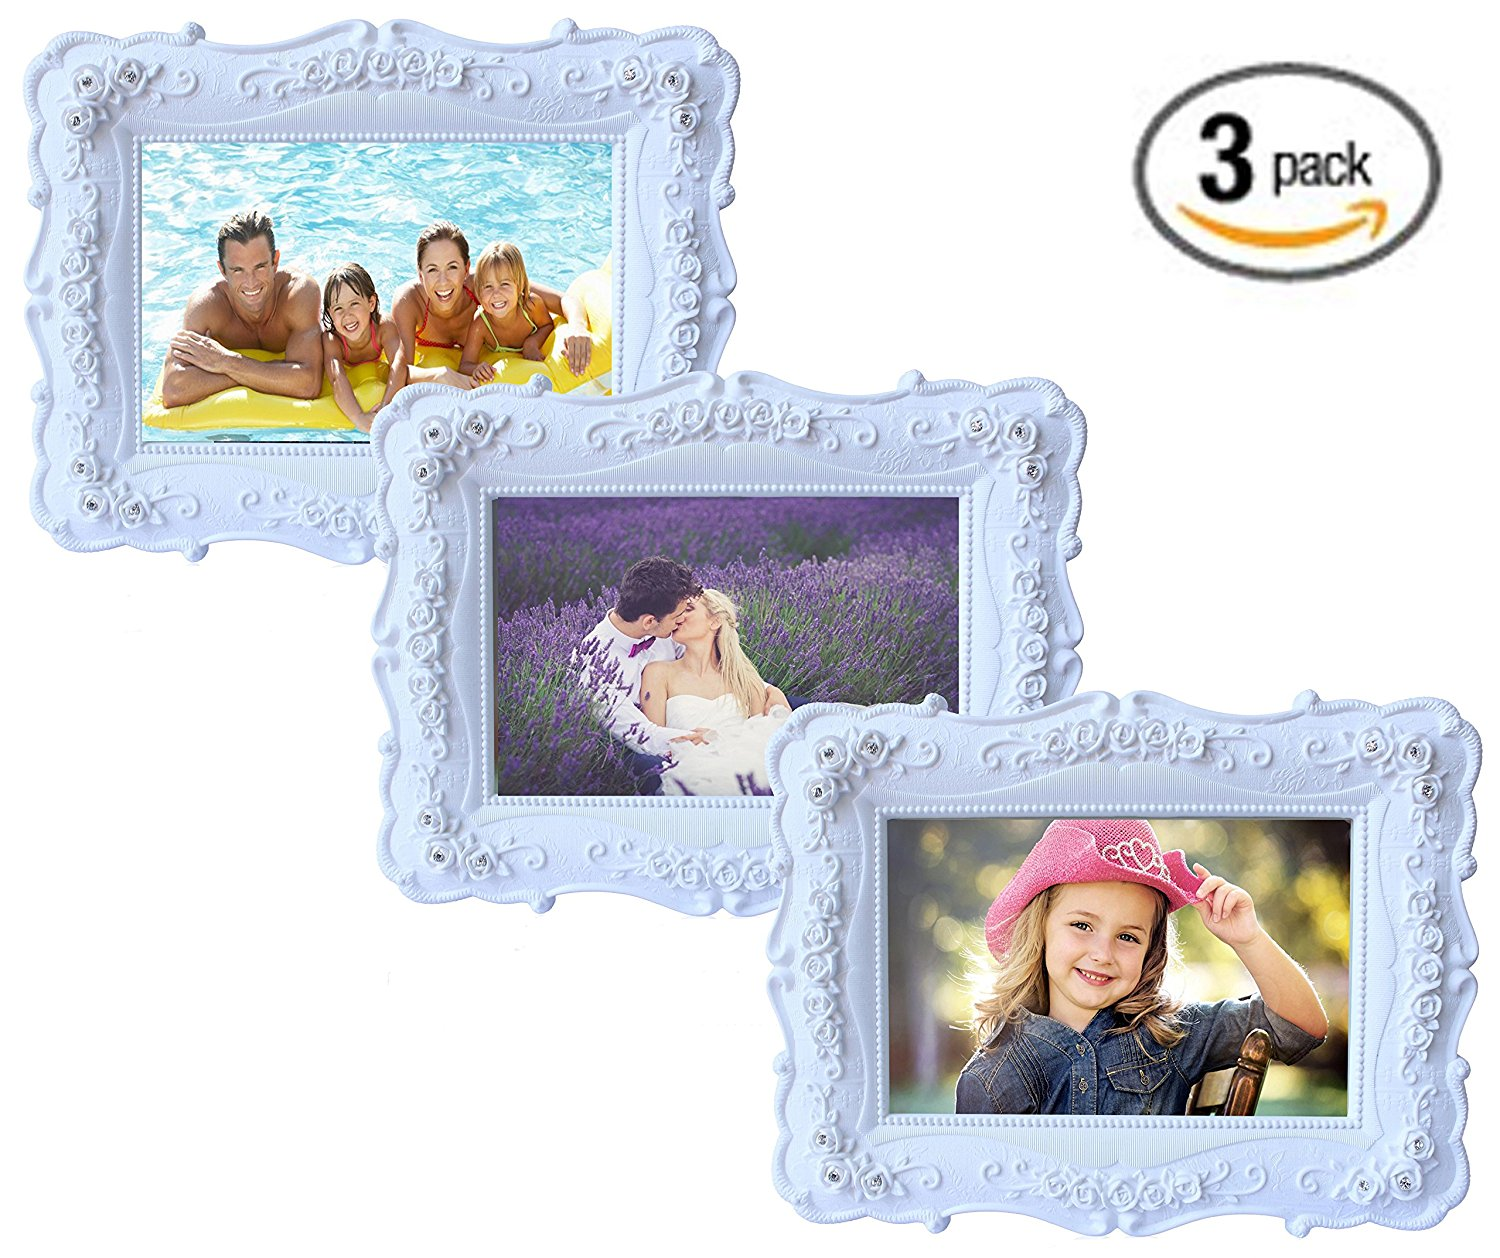 """Olivery Victorian Inspired Flower Photo Frame - 4"""" X 6"""" Easel Soft Velvet Back Floral Picture Frames - Hand-painted Resin & Glass Home Decor - Great Gift Idea, Wedding Gift & More (3 Packs)"""